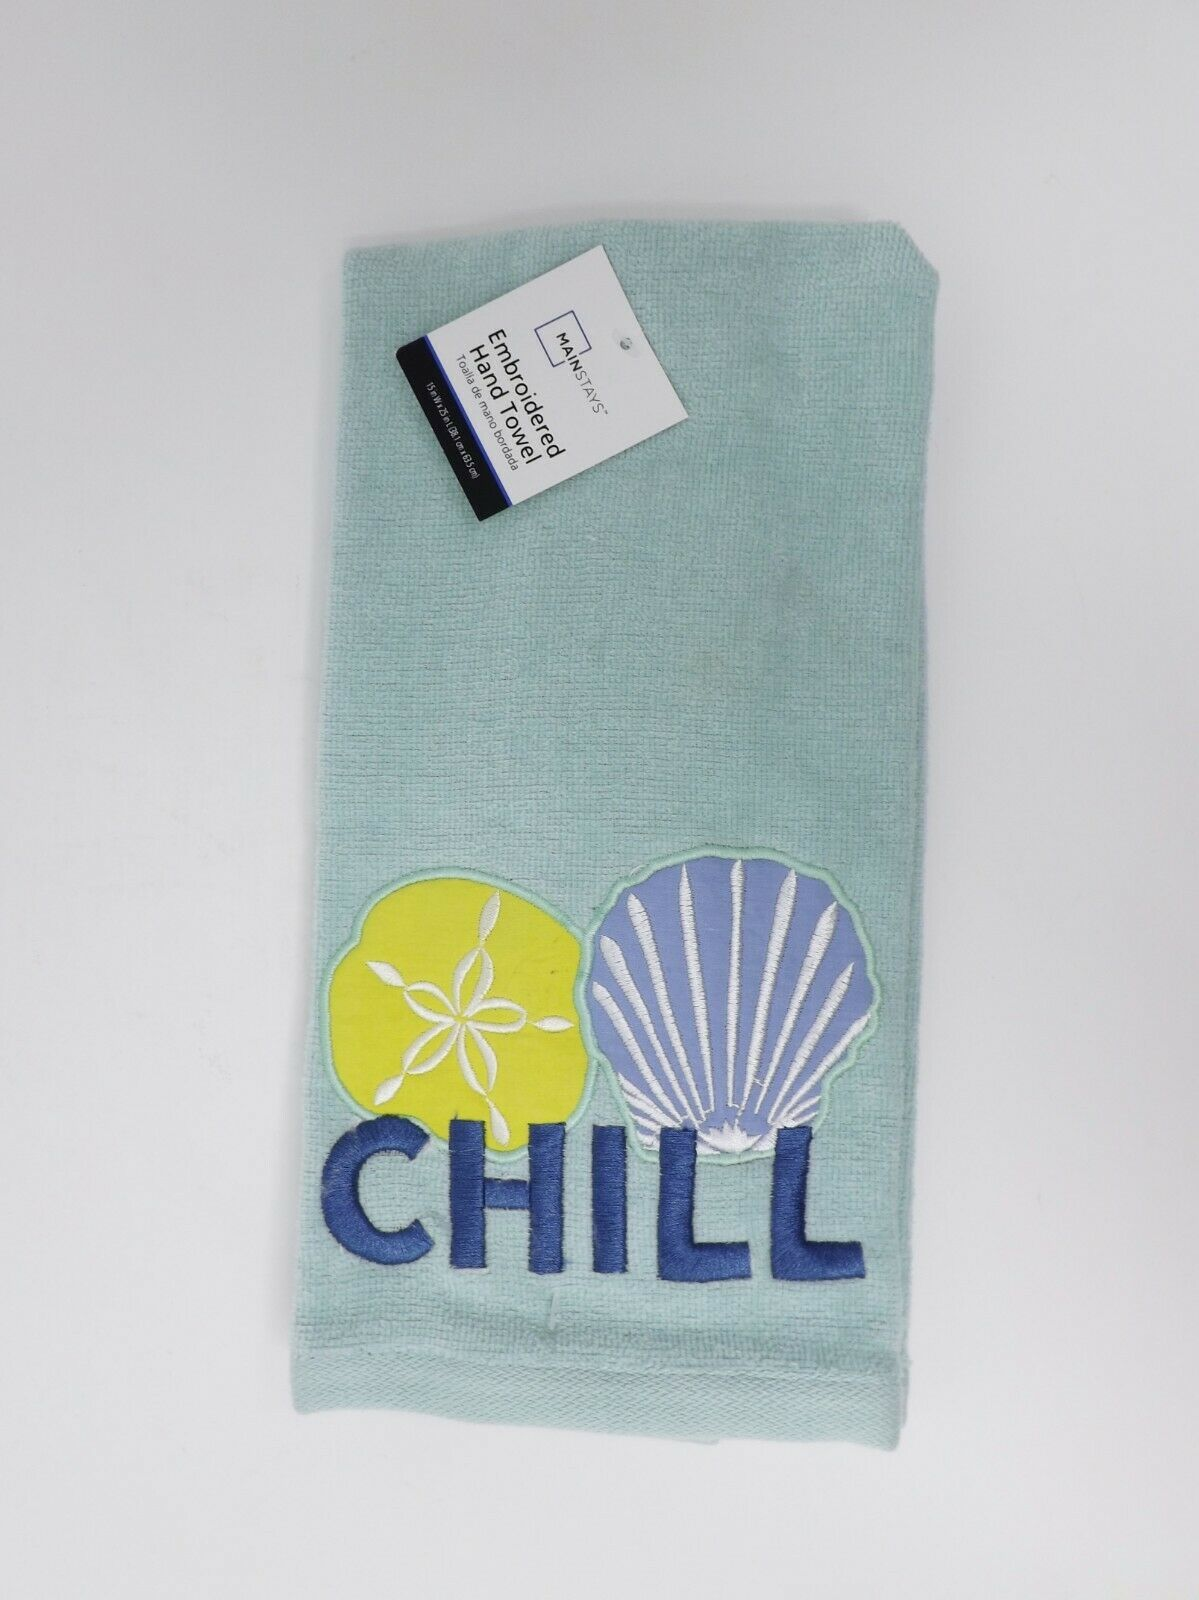 Mainstays Embroidered Hand Towel - New - Chill - $9.99